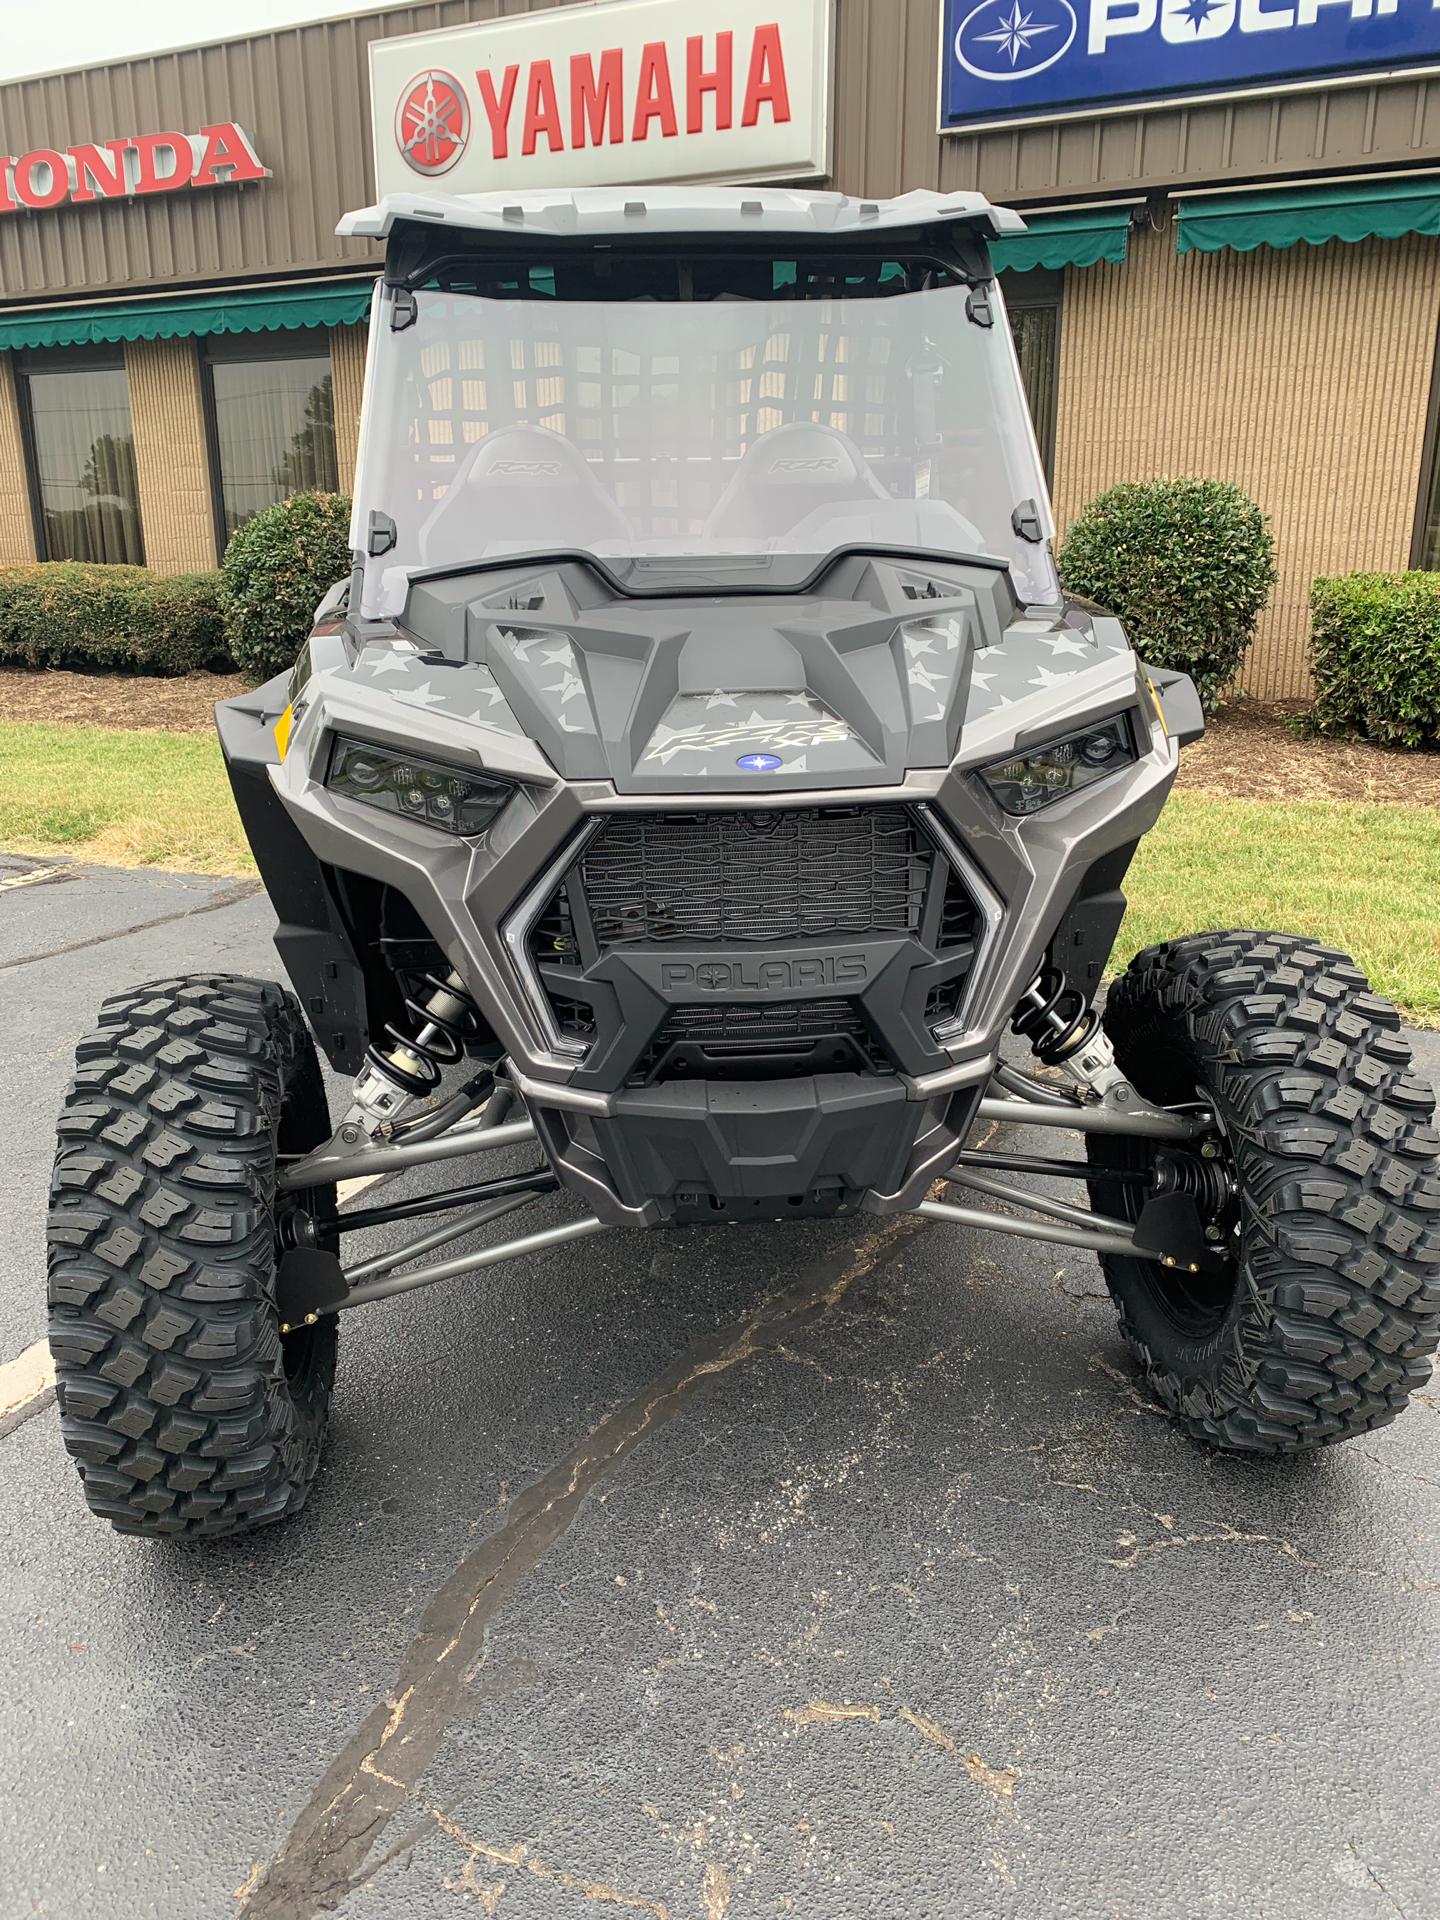 2020 Polaris RZR XP 1000 LE in Statesville, North Carolina - Photo 4